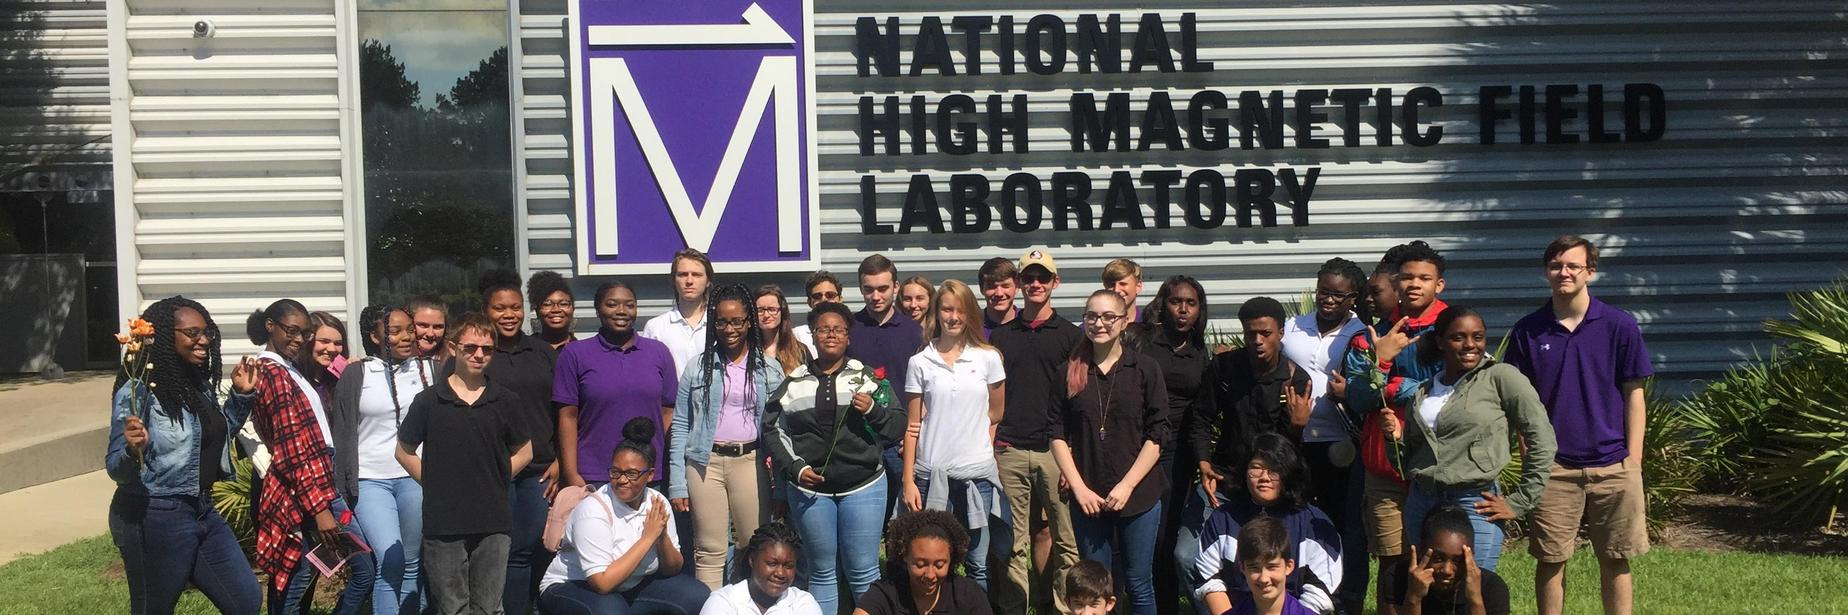 Students at National High Magnetic Field Laboratory